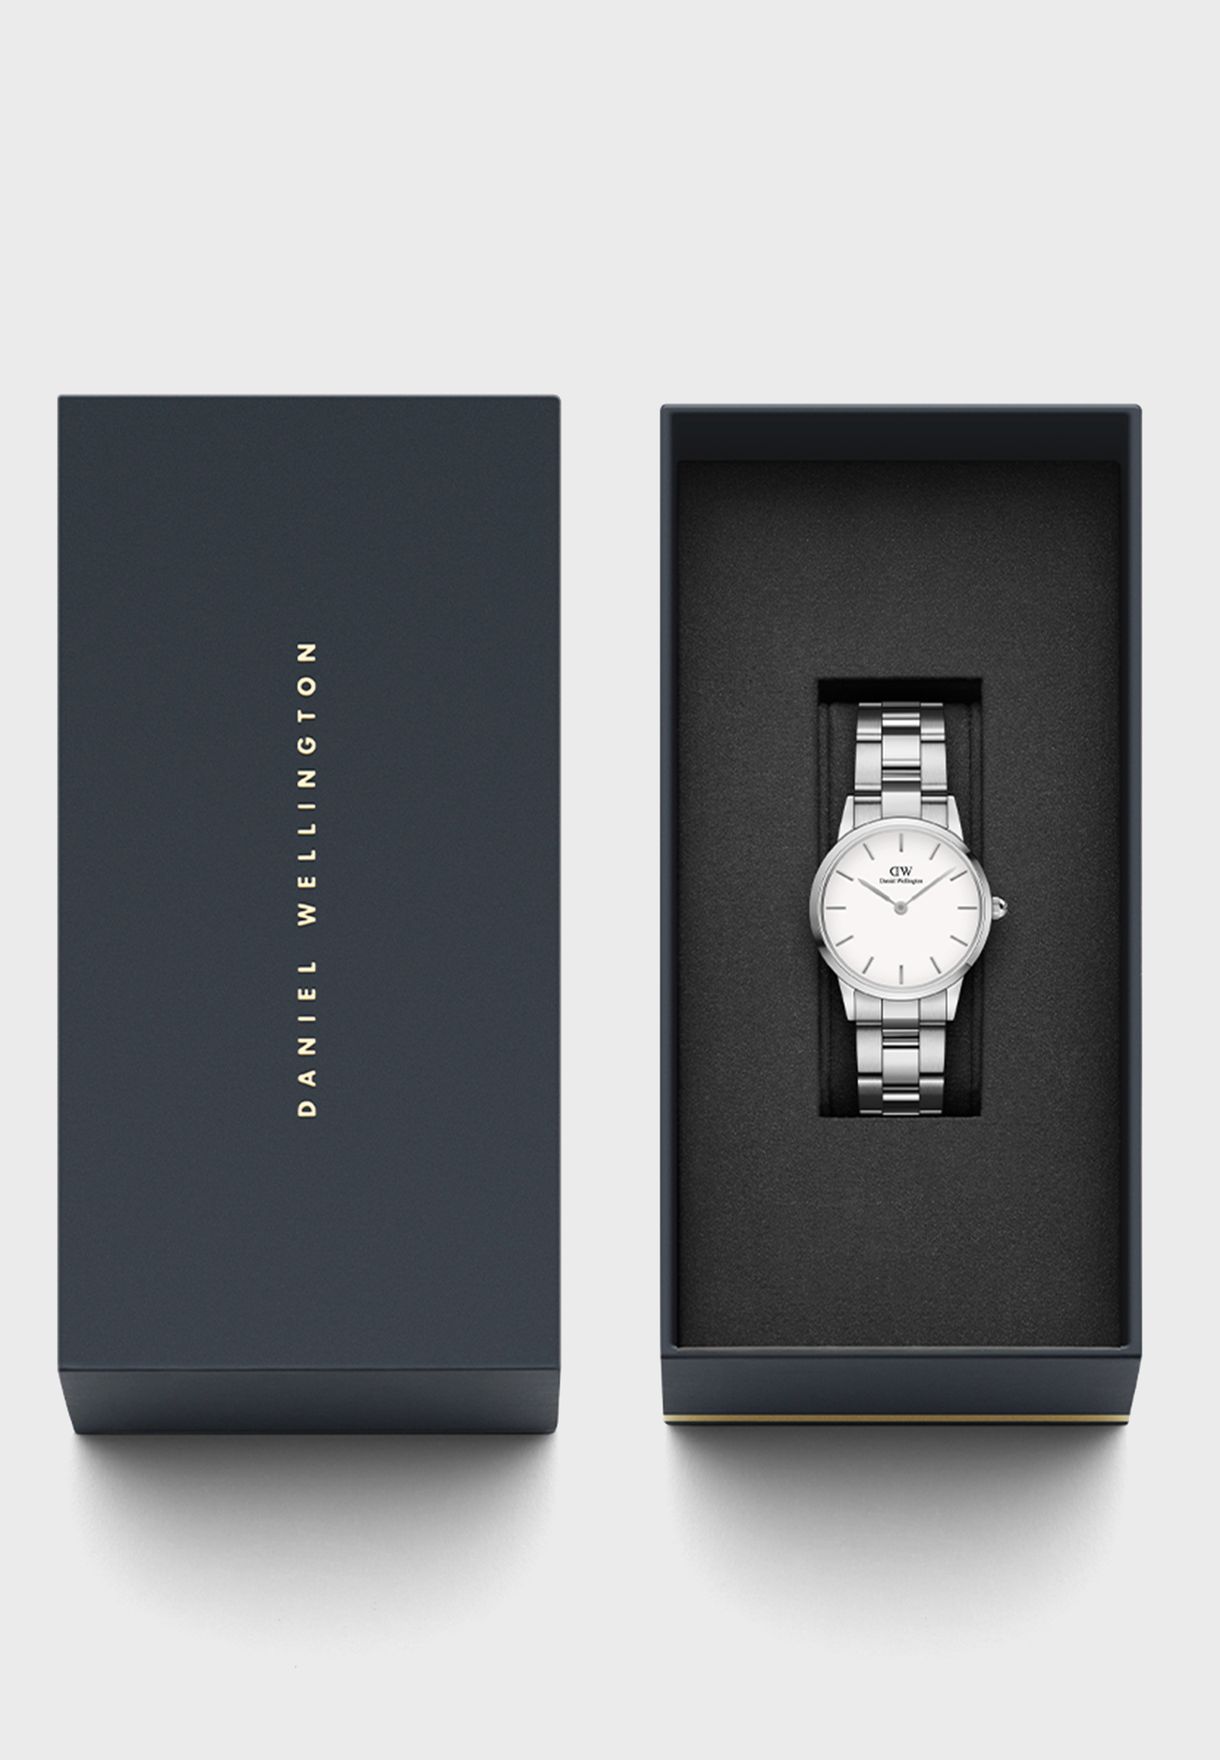 Iconic Link 28 Analog Watch